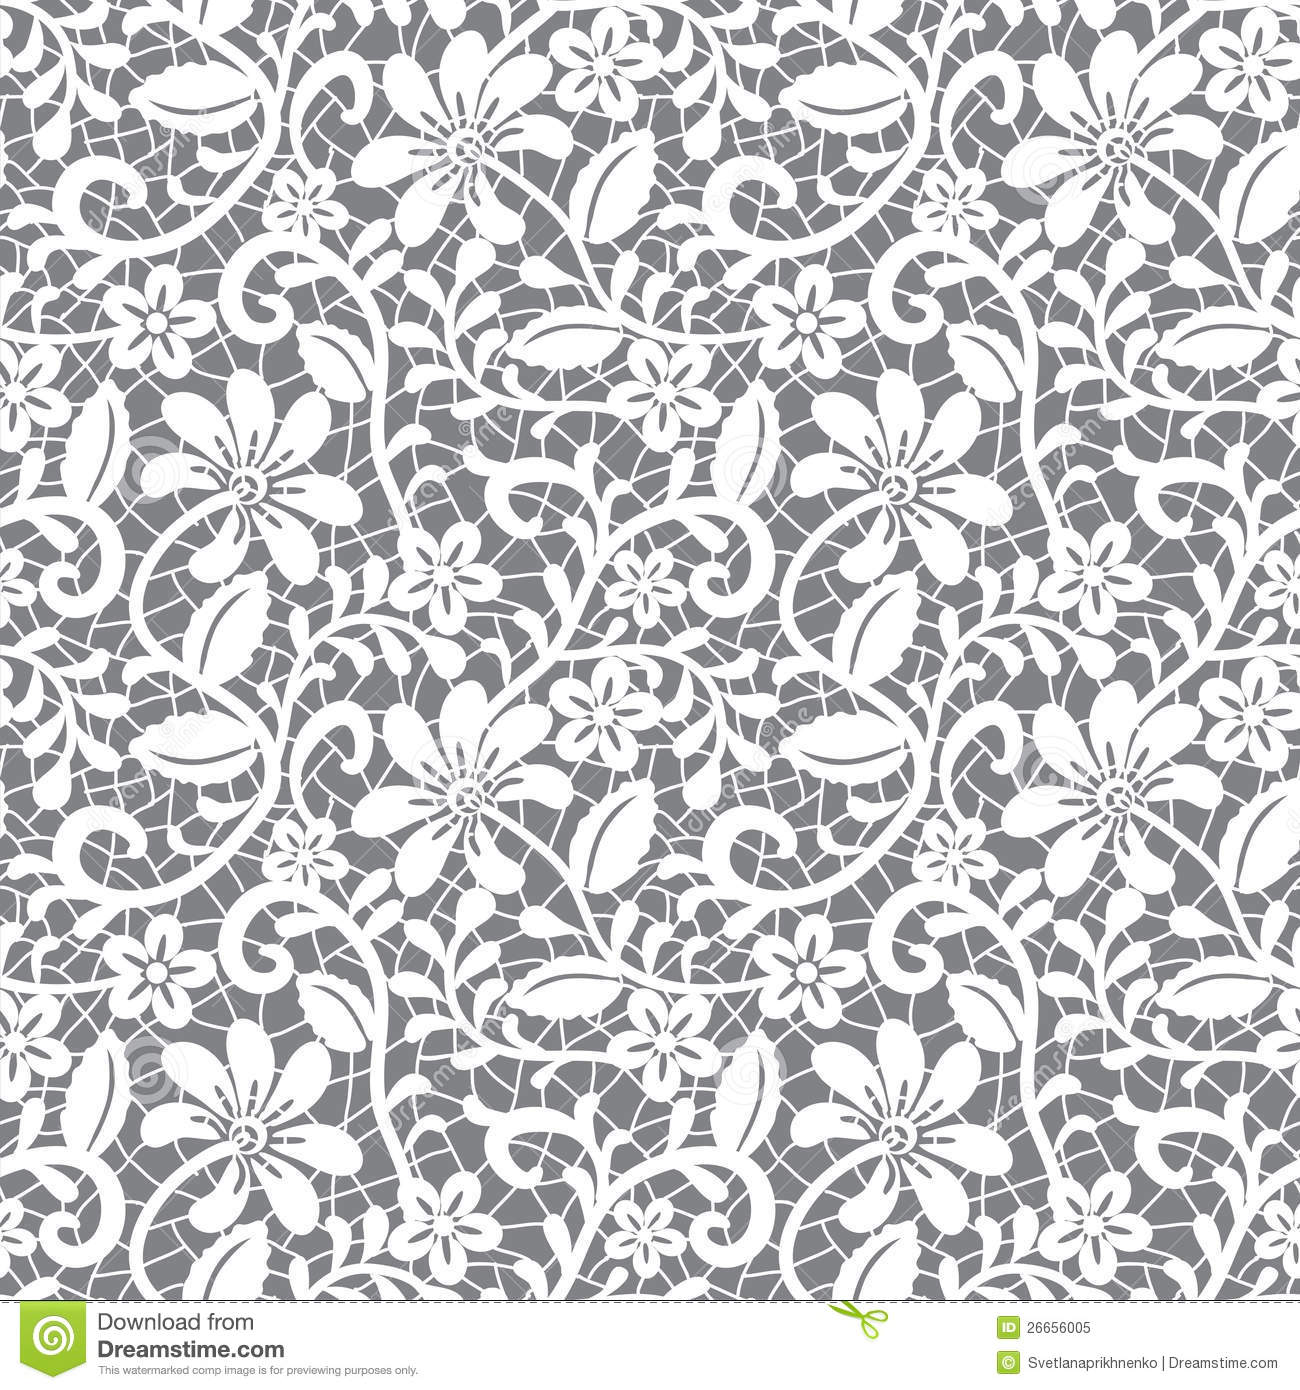 Grey and white patterned clipart.